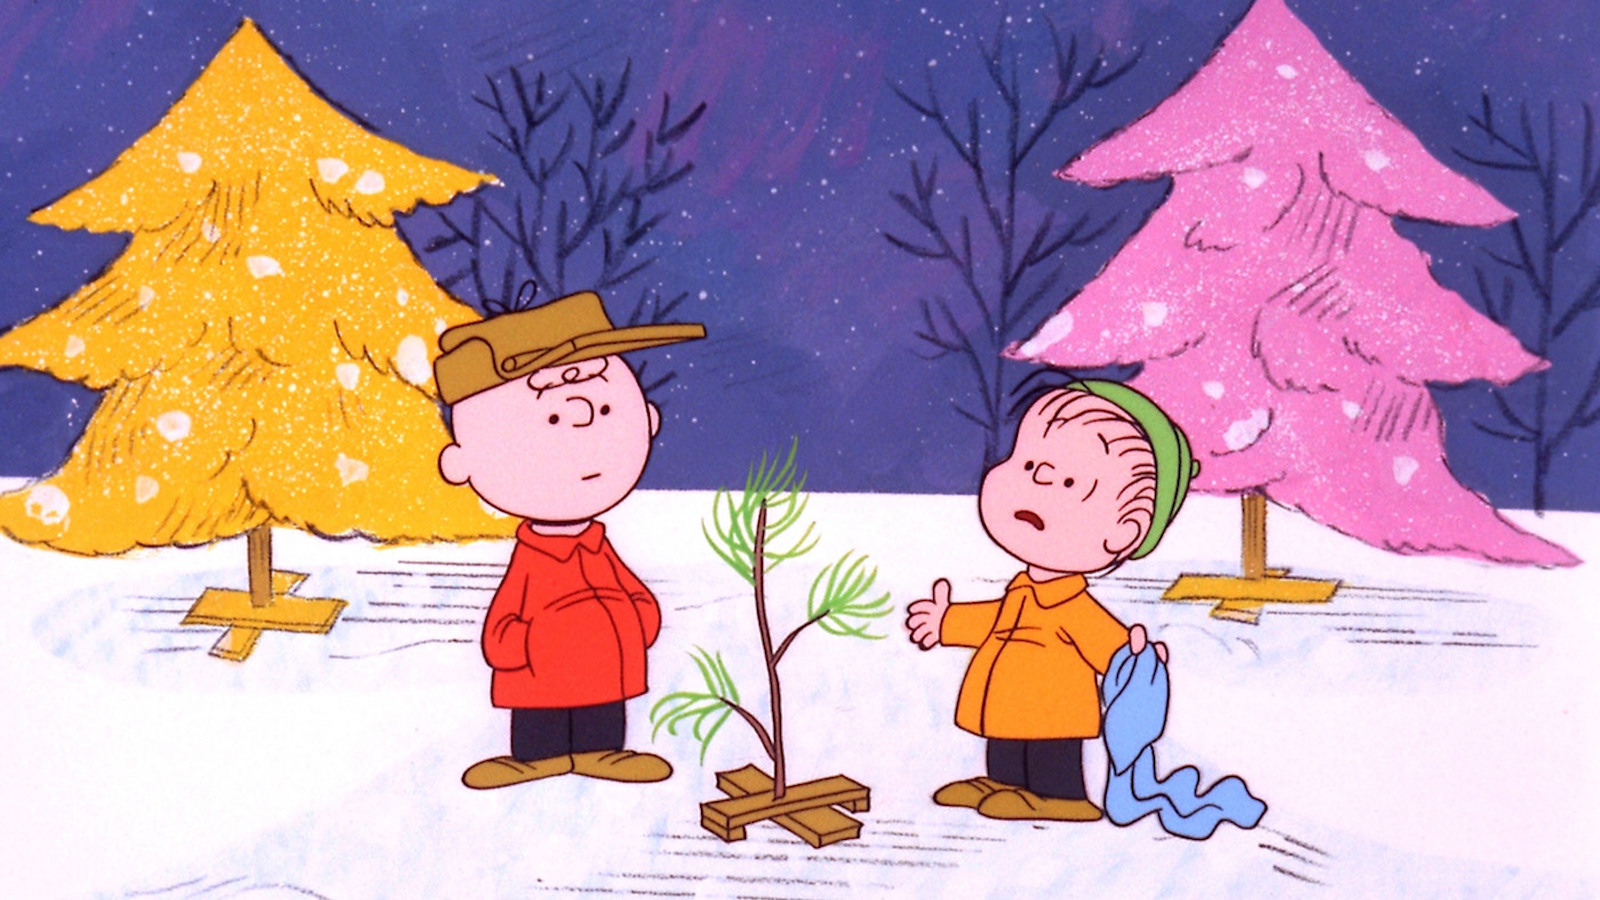 A Charlie Brown Christmas Is Actually A Secret Metaphor For